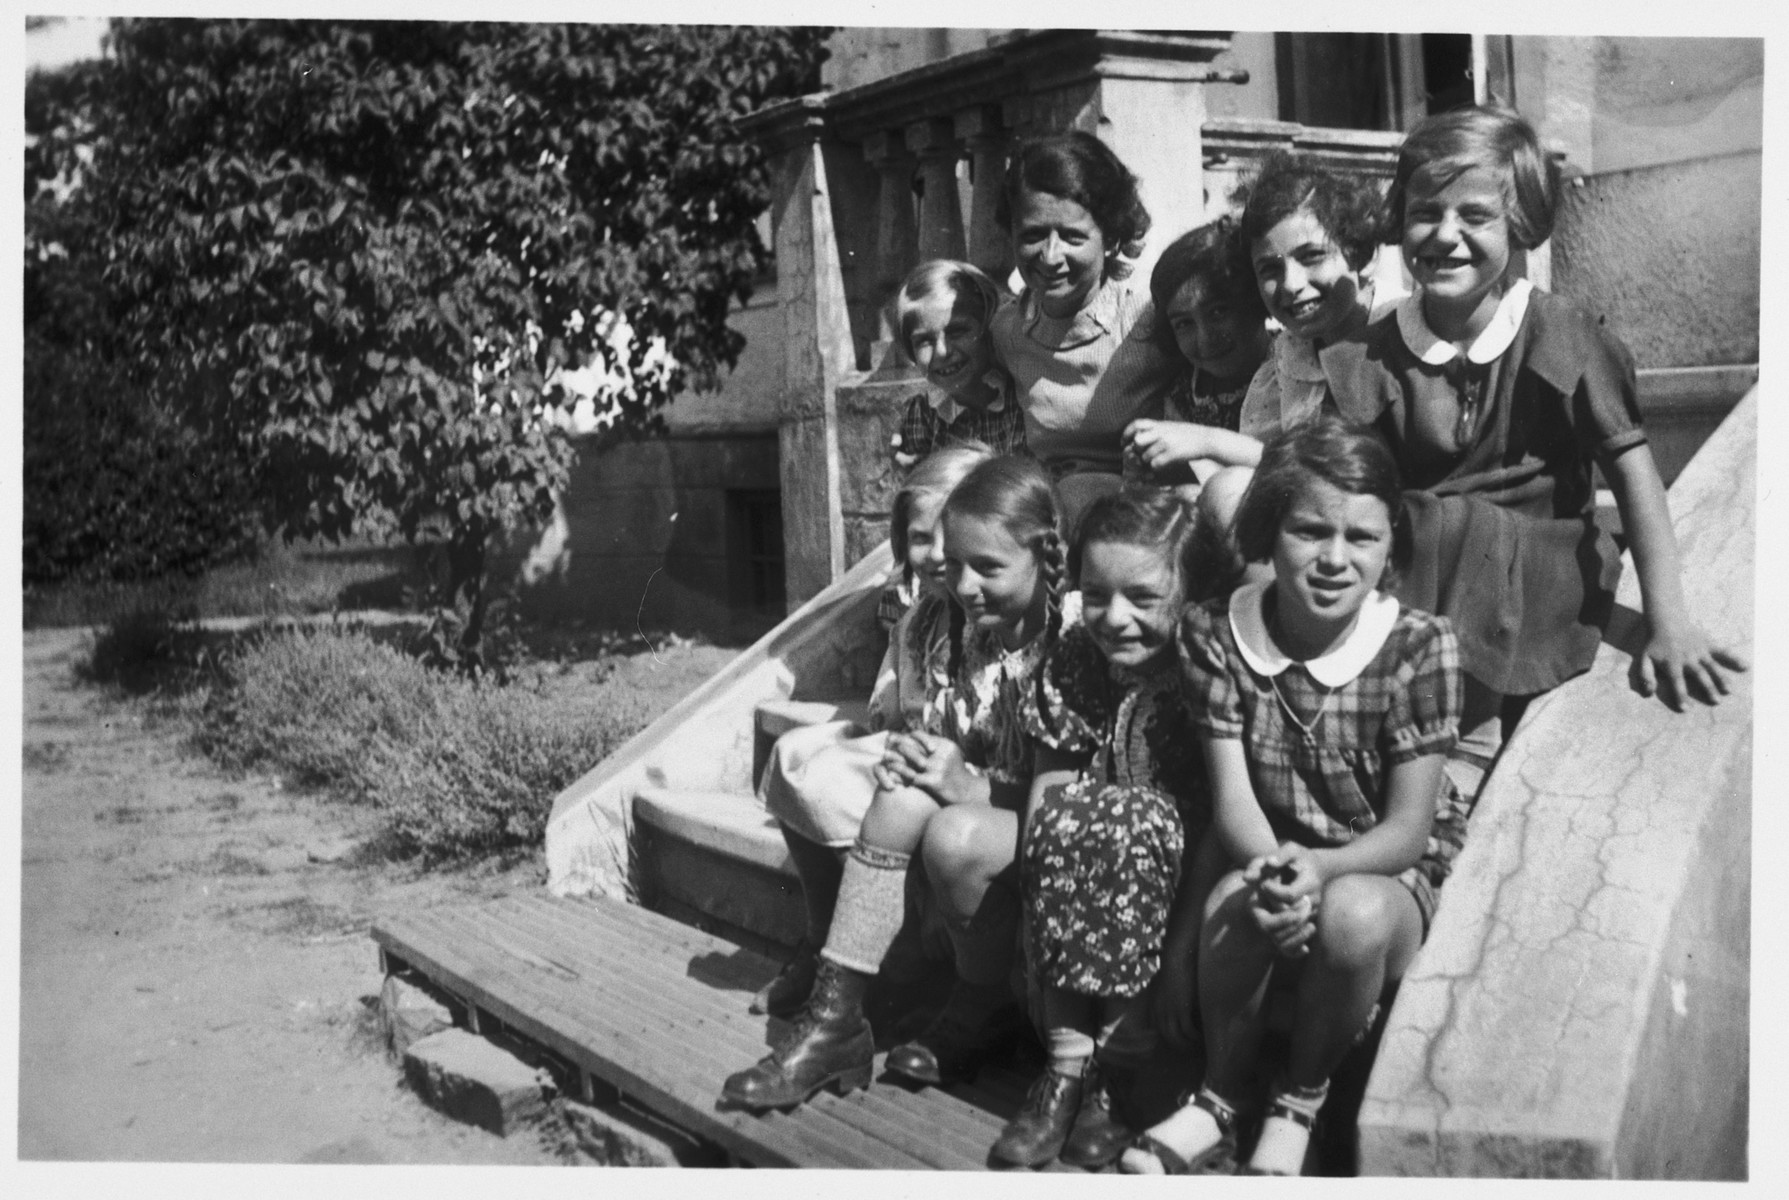 Group portrait of Jewish girls from Germany at a Kinderlager [children's recreational summer camp] in Horserod, Denmark.    In 1935-36 Norbert Wollheim was involved in organizing groups of German Jewish youth to attend a summer camp in Denmark.